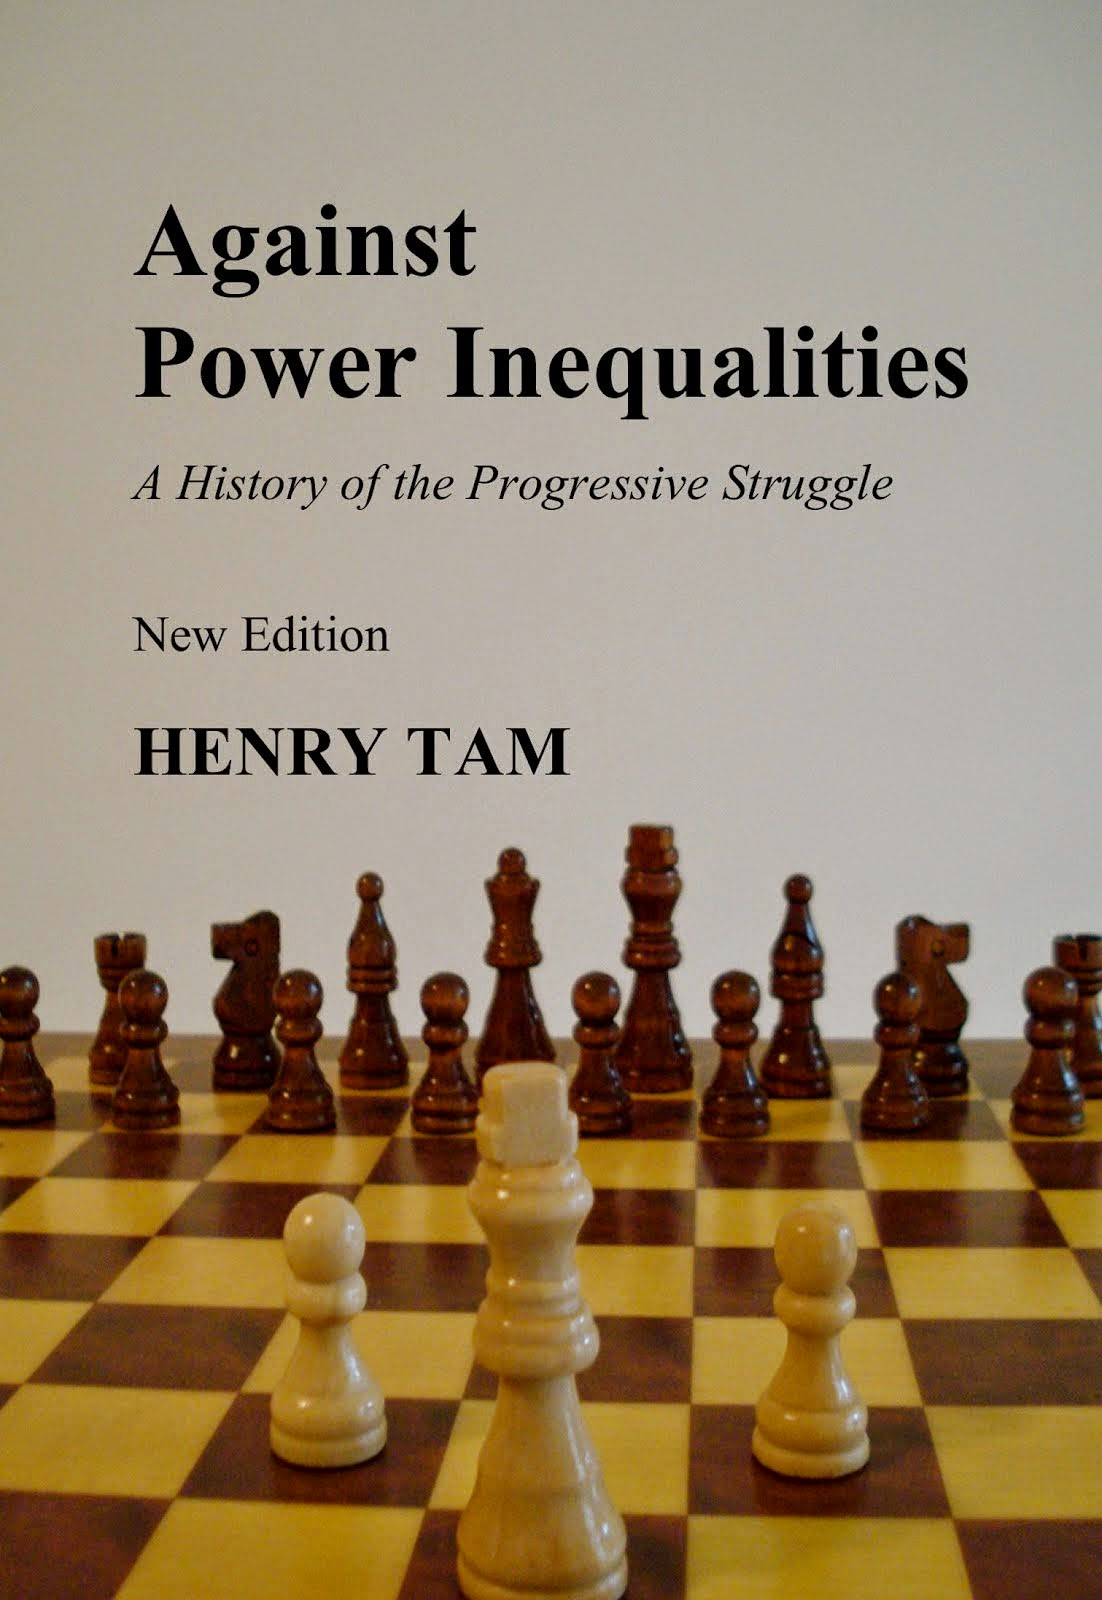 Against Power Inequalities